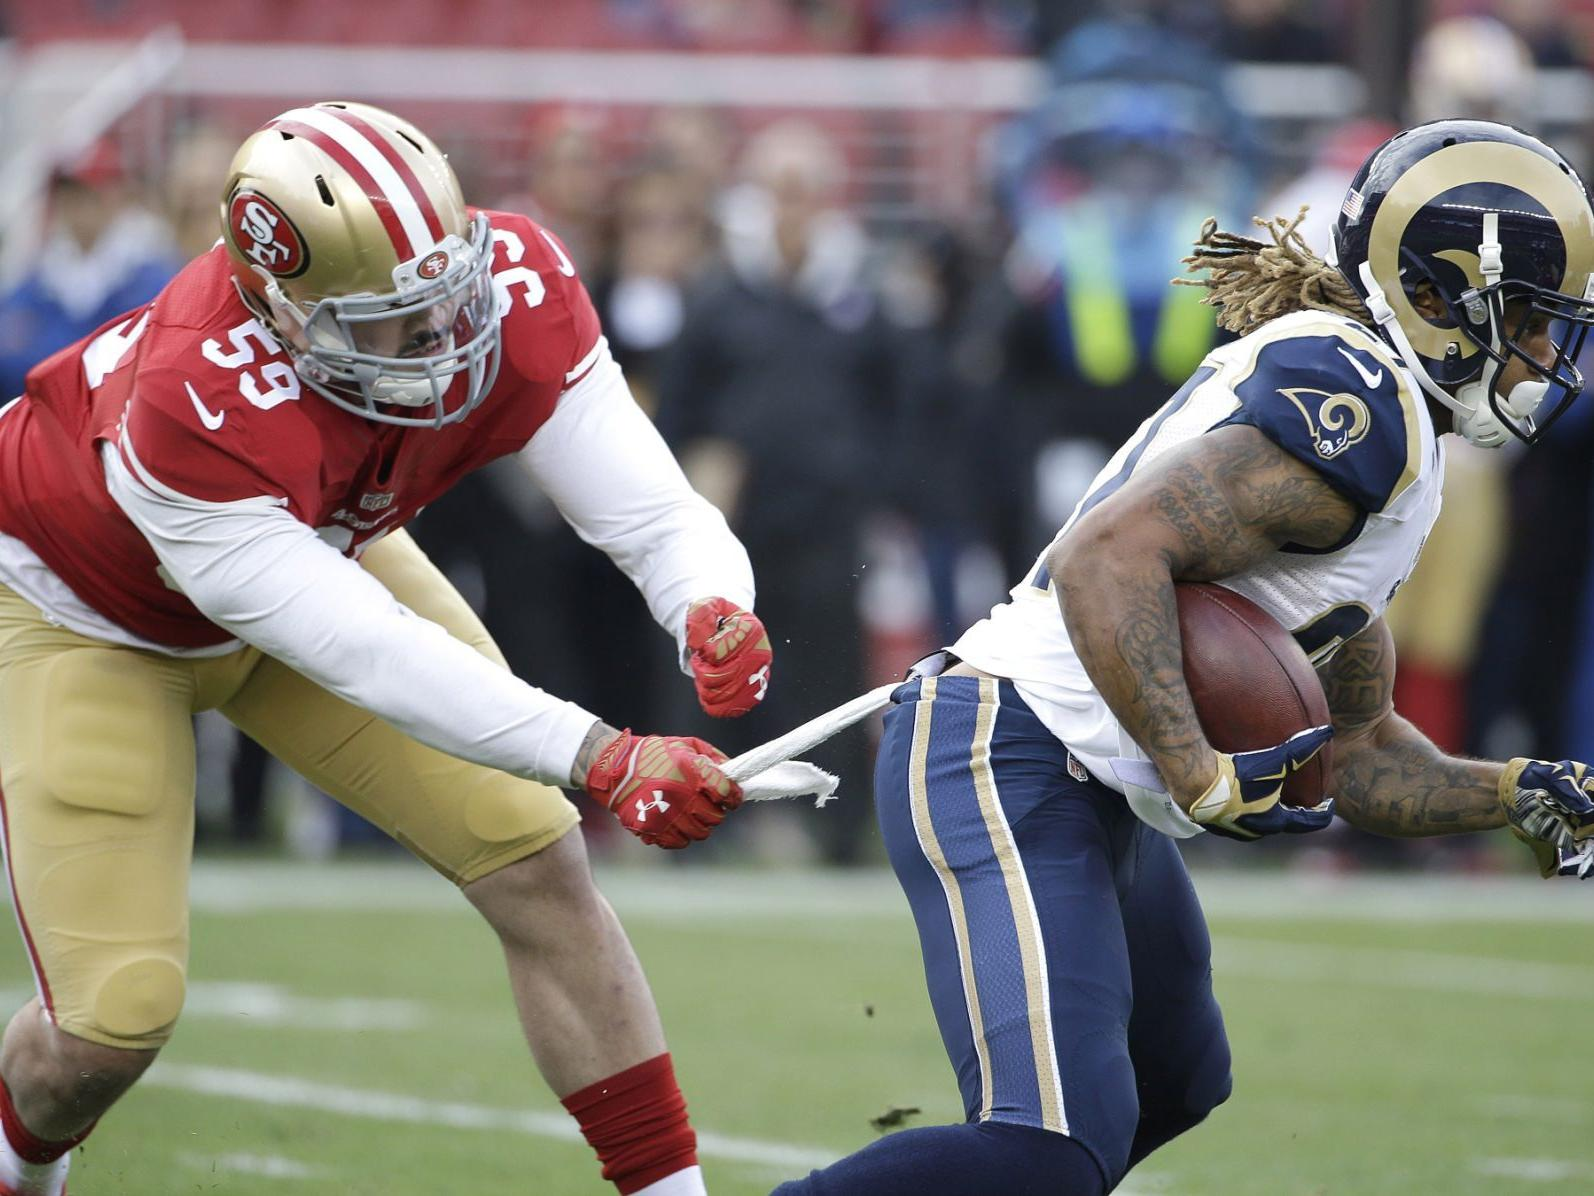 NFL notebook: 49ers LB Lynch suspended 4 games